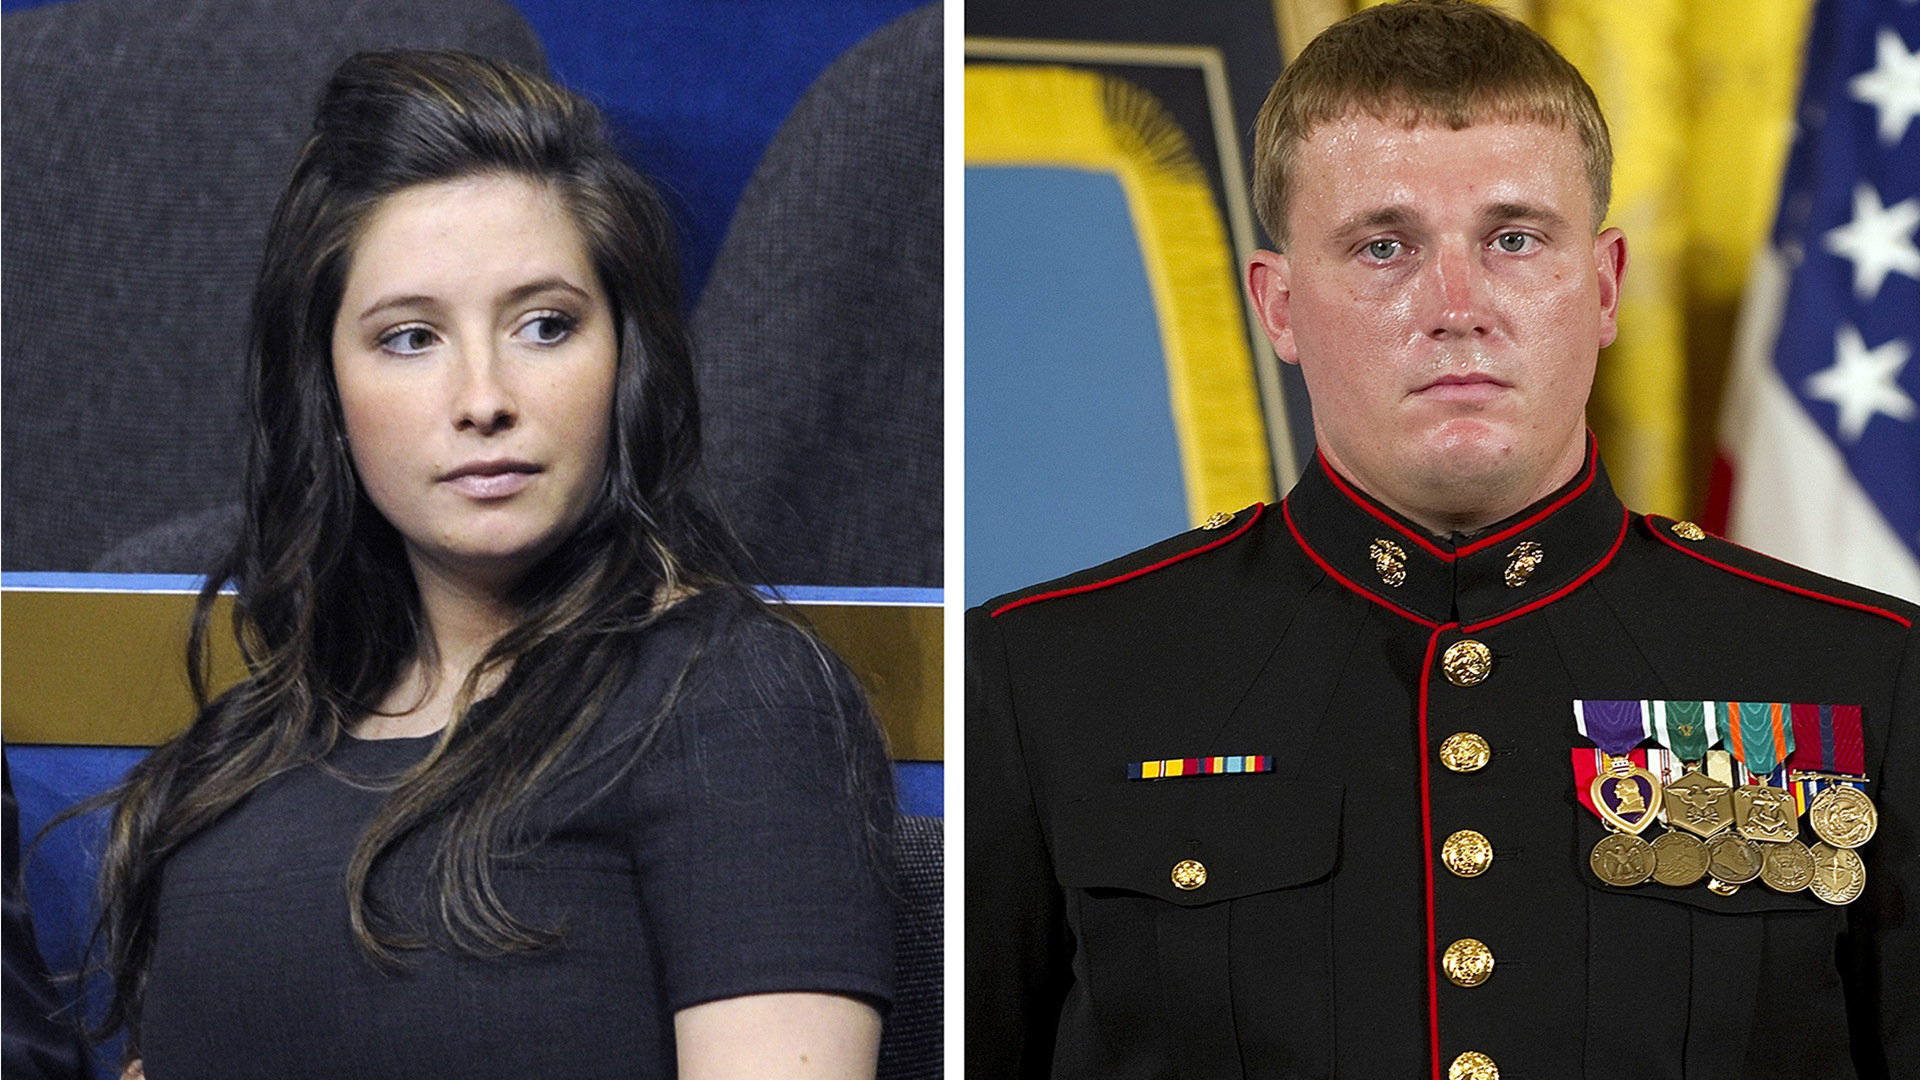 Bristol Palin S Wedding Will Not Be Held Sarah Palin